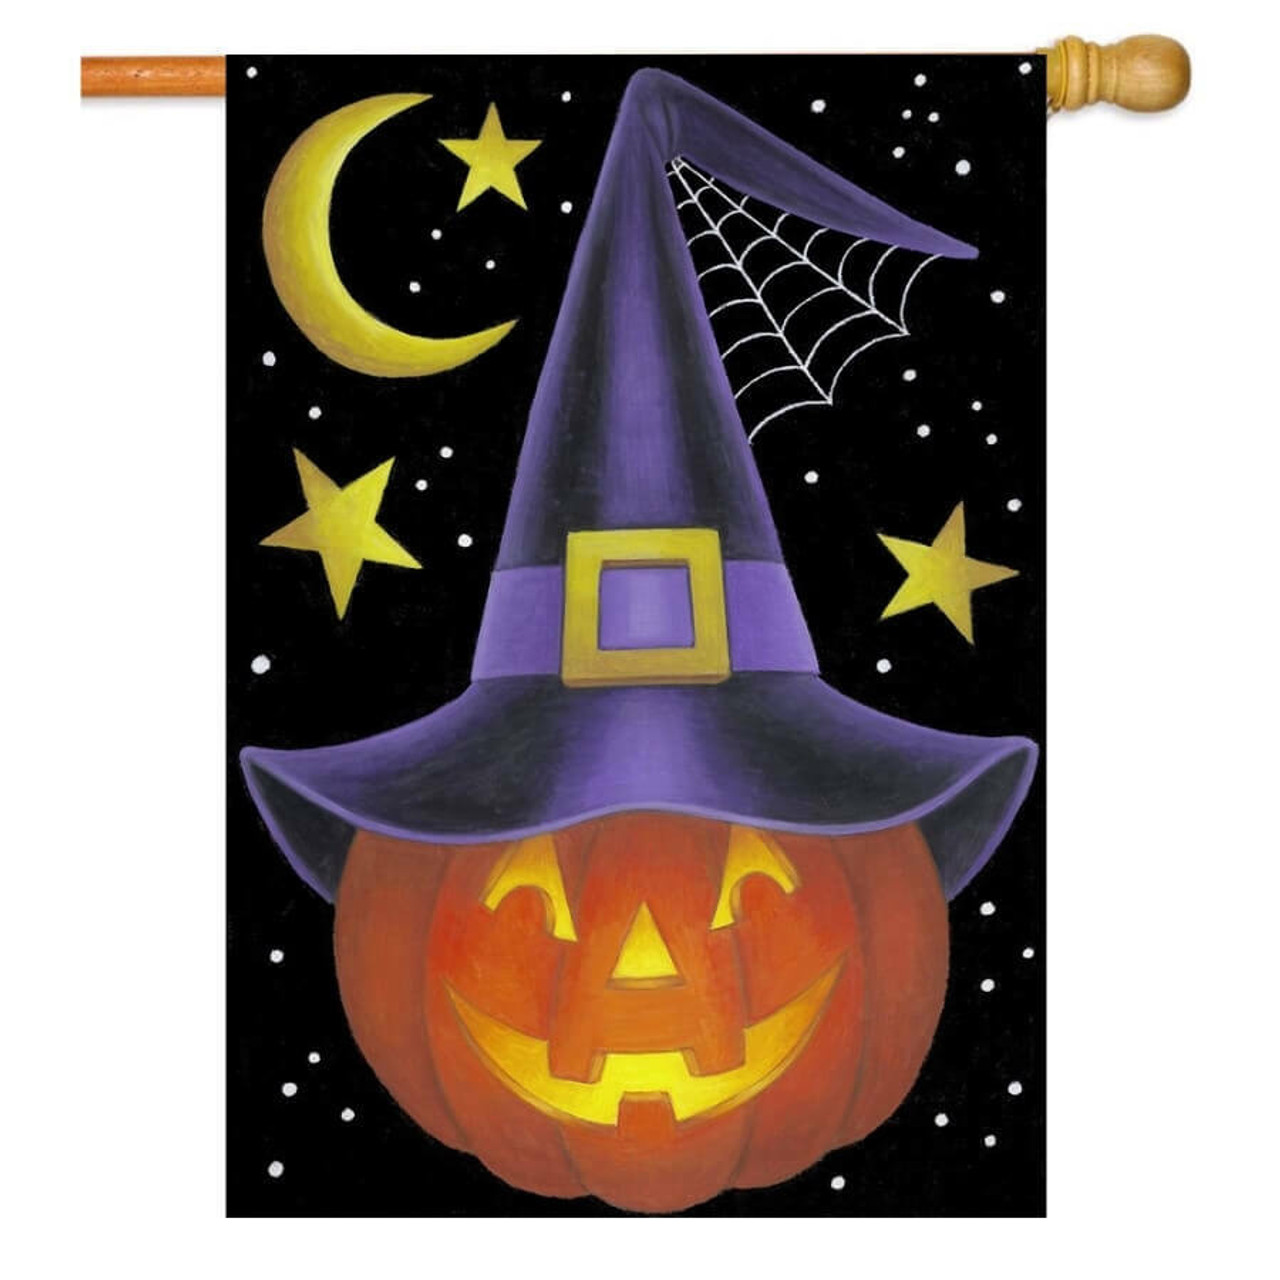 Halloween House flag with an orange jack-o'-lantern in the middle wearing a purple witch hat. The background is black with small white spots, 3 yellow stars, and a yellow crescent moon.